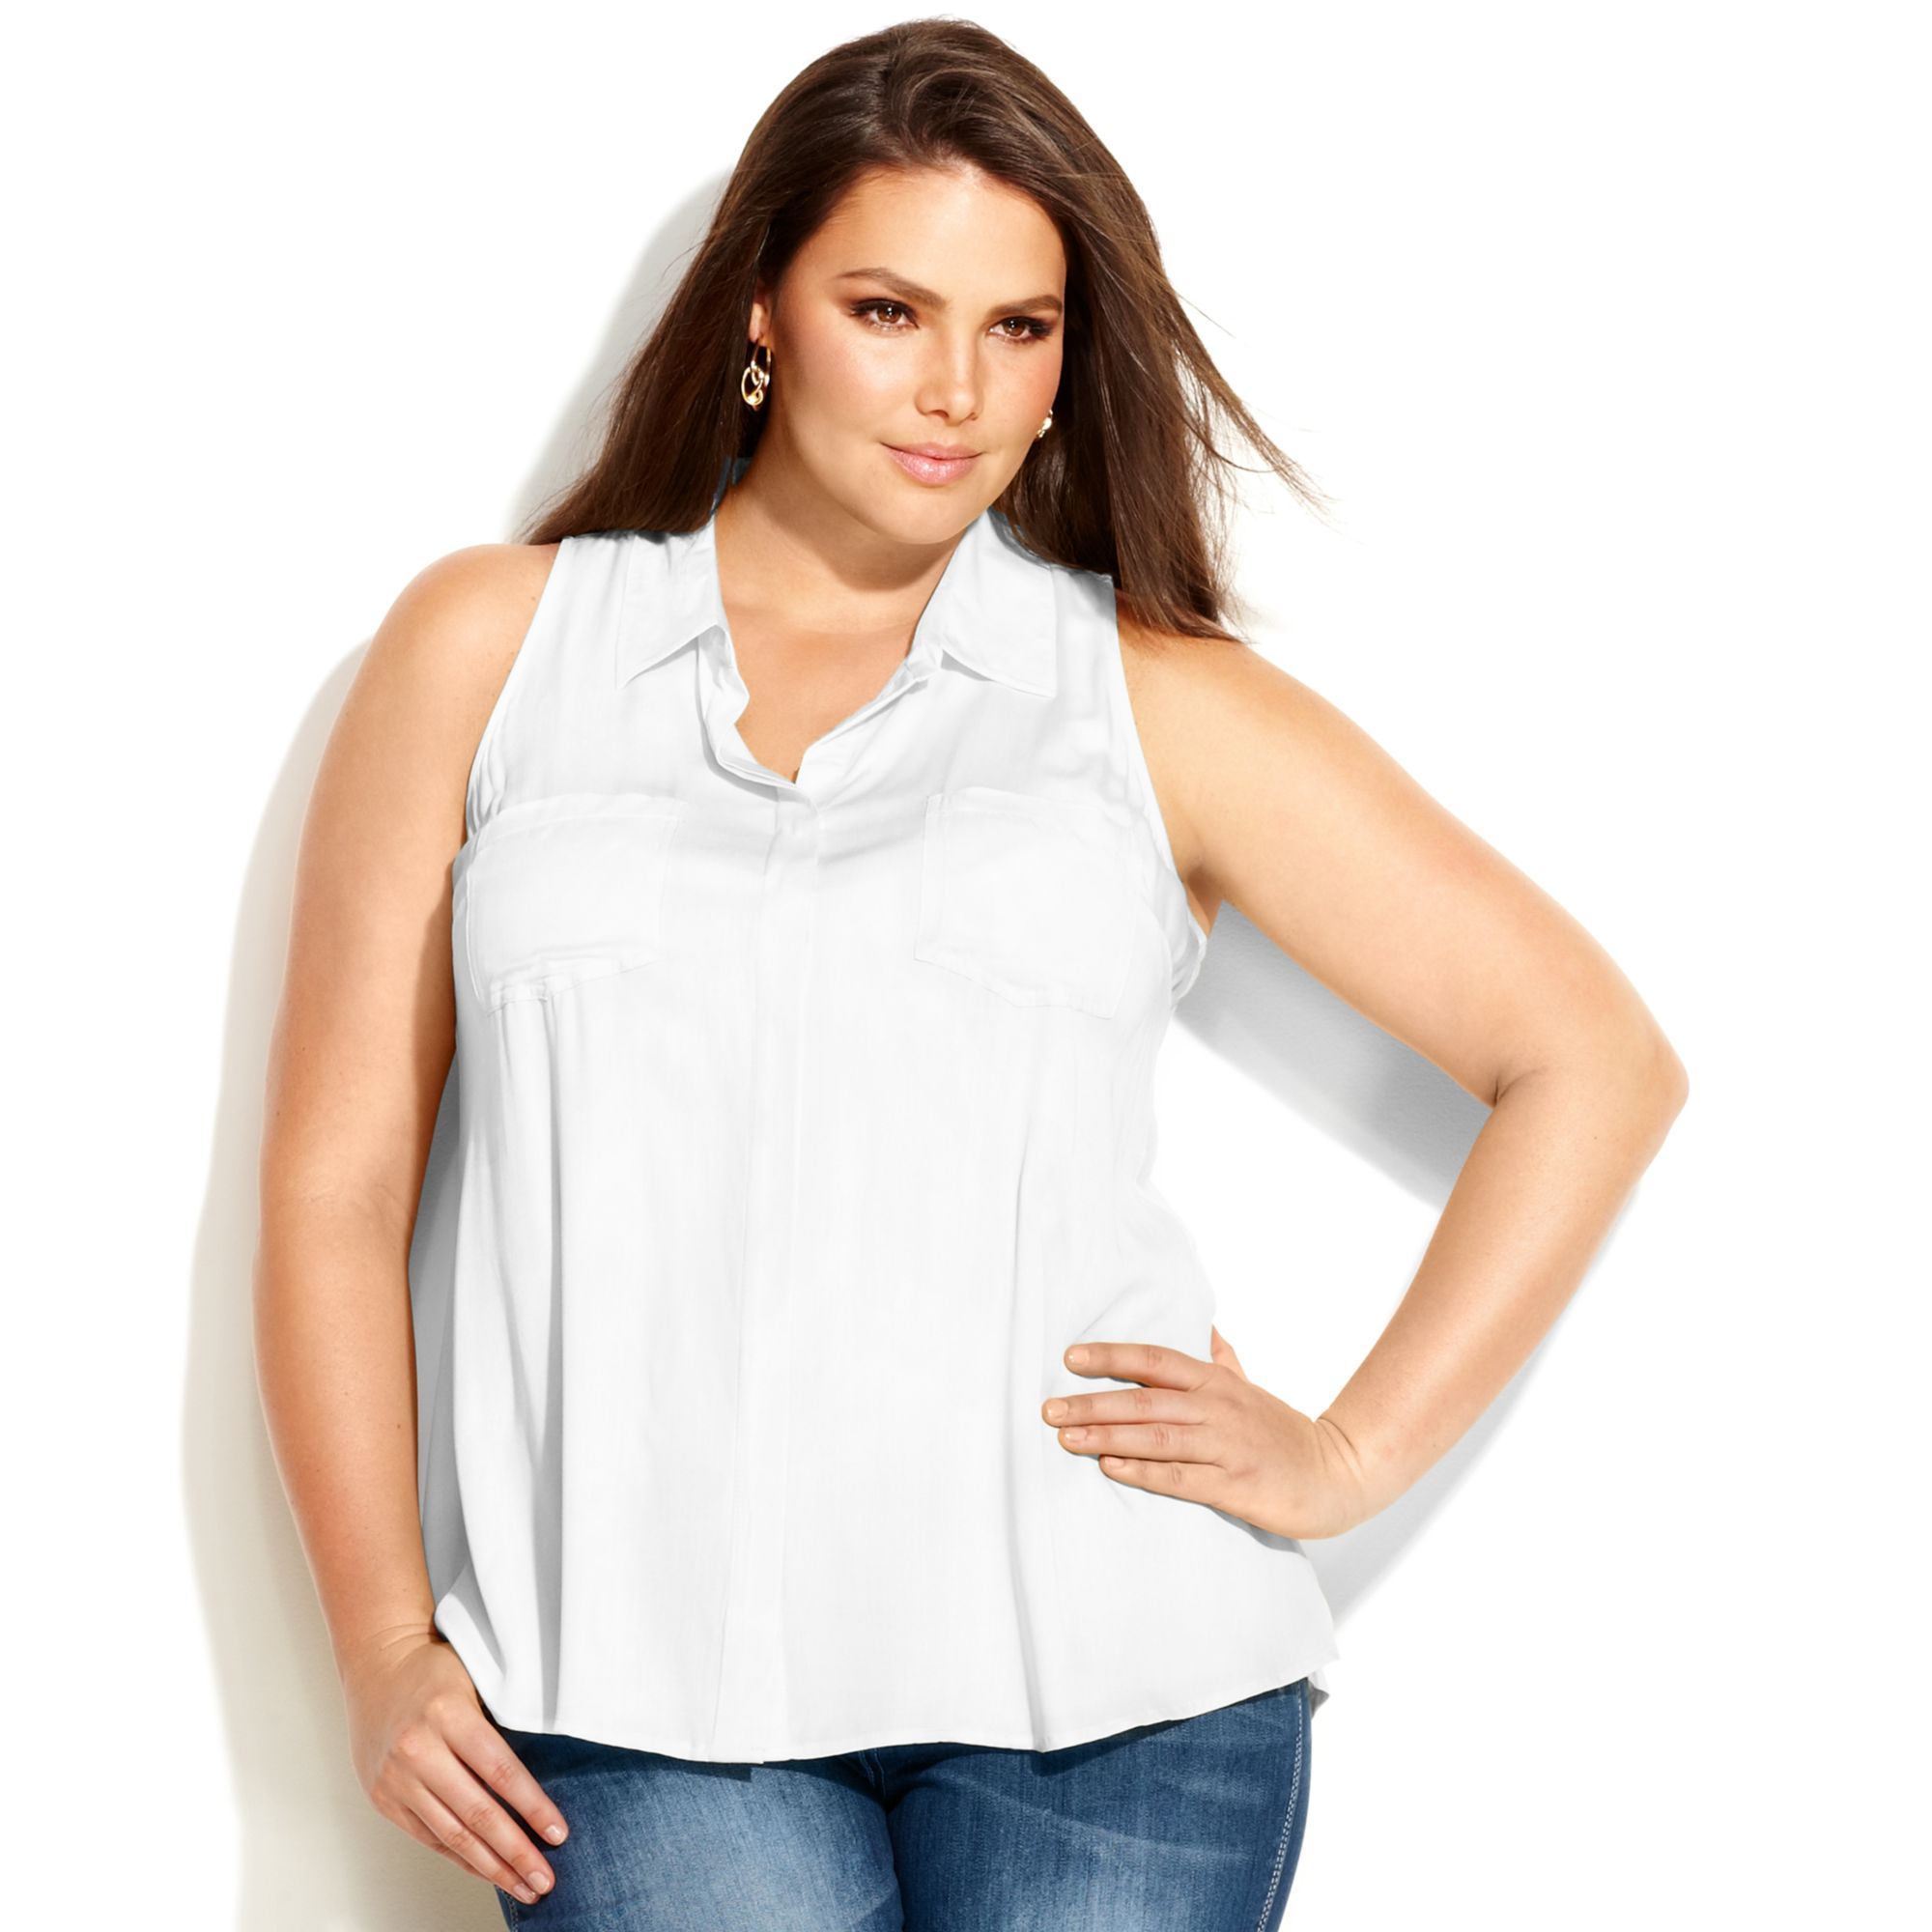 Plus Size Tops Explore a wide selection of designer plus size tops. You'll find a range of colors to match any mood, and unique blouses that combine bold patterns and eye-catching details.